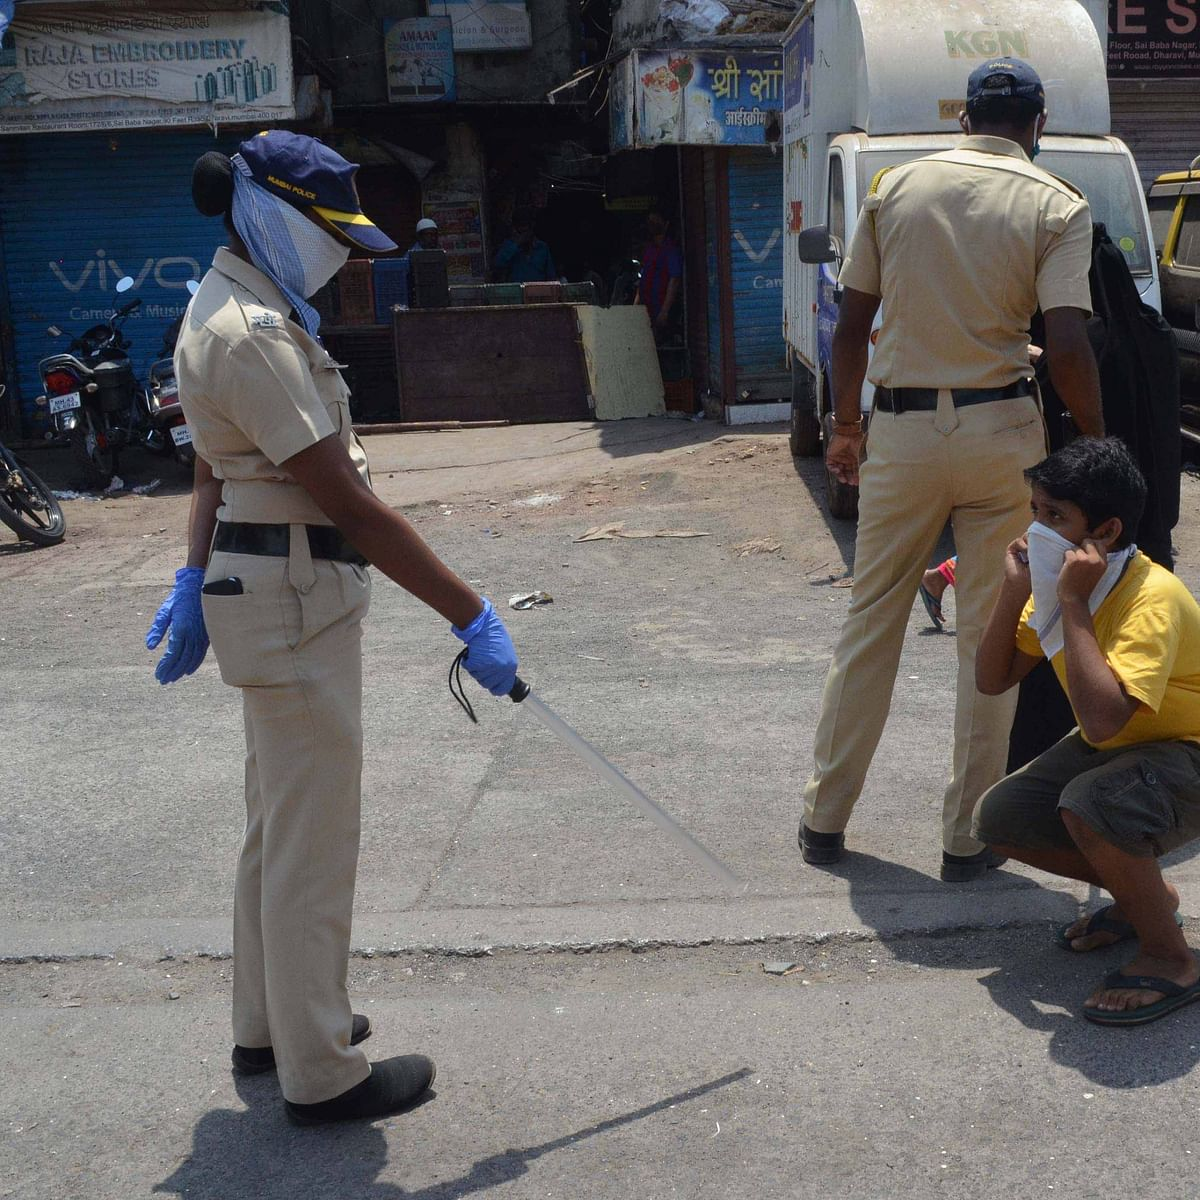 As lockdown norms begin to ease, crime is back on the streets of Mumbai